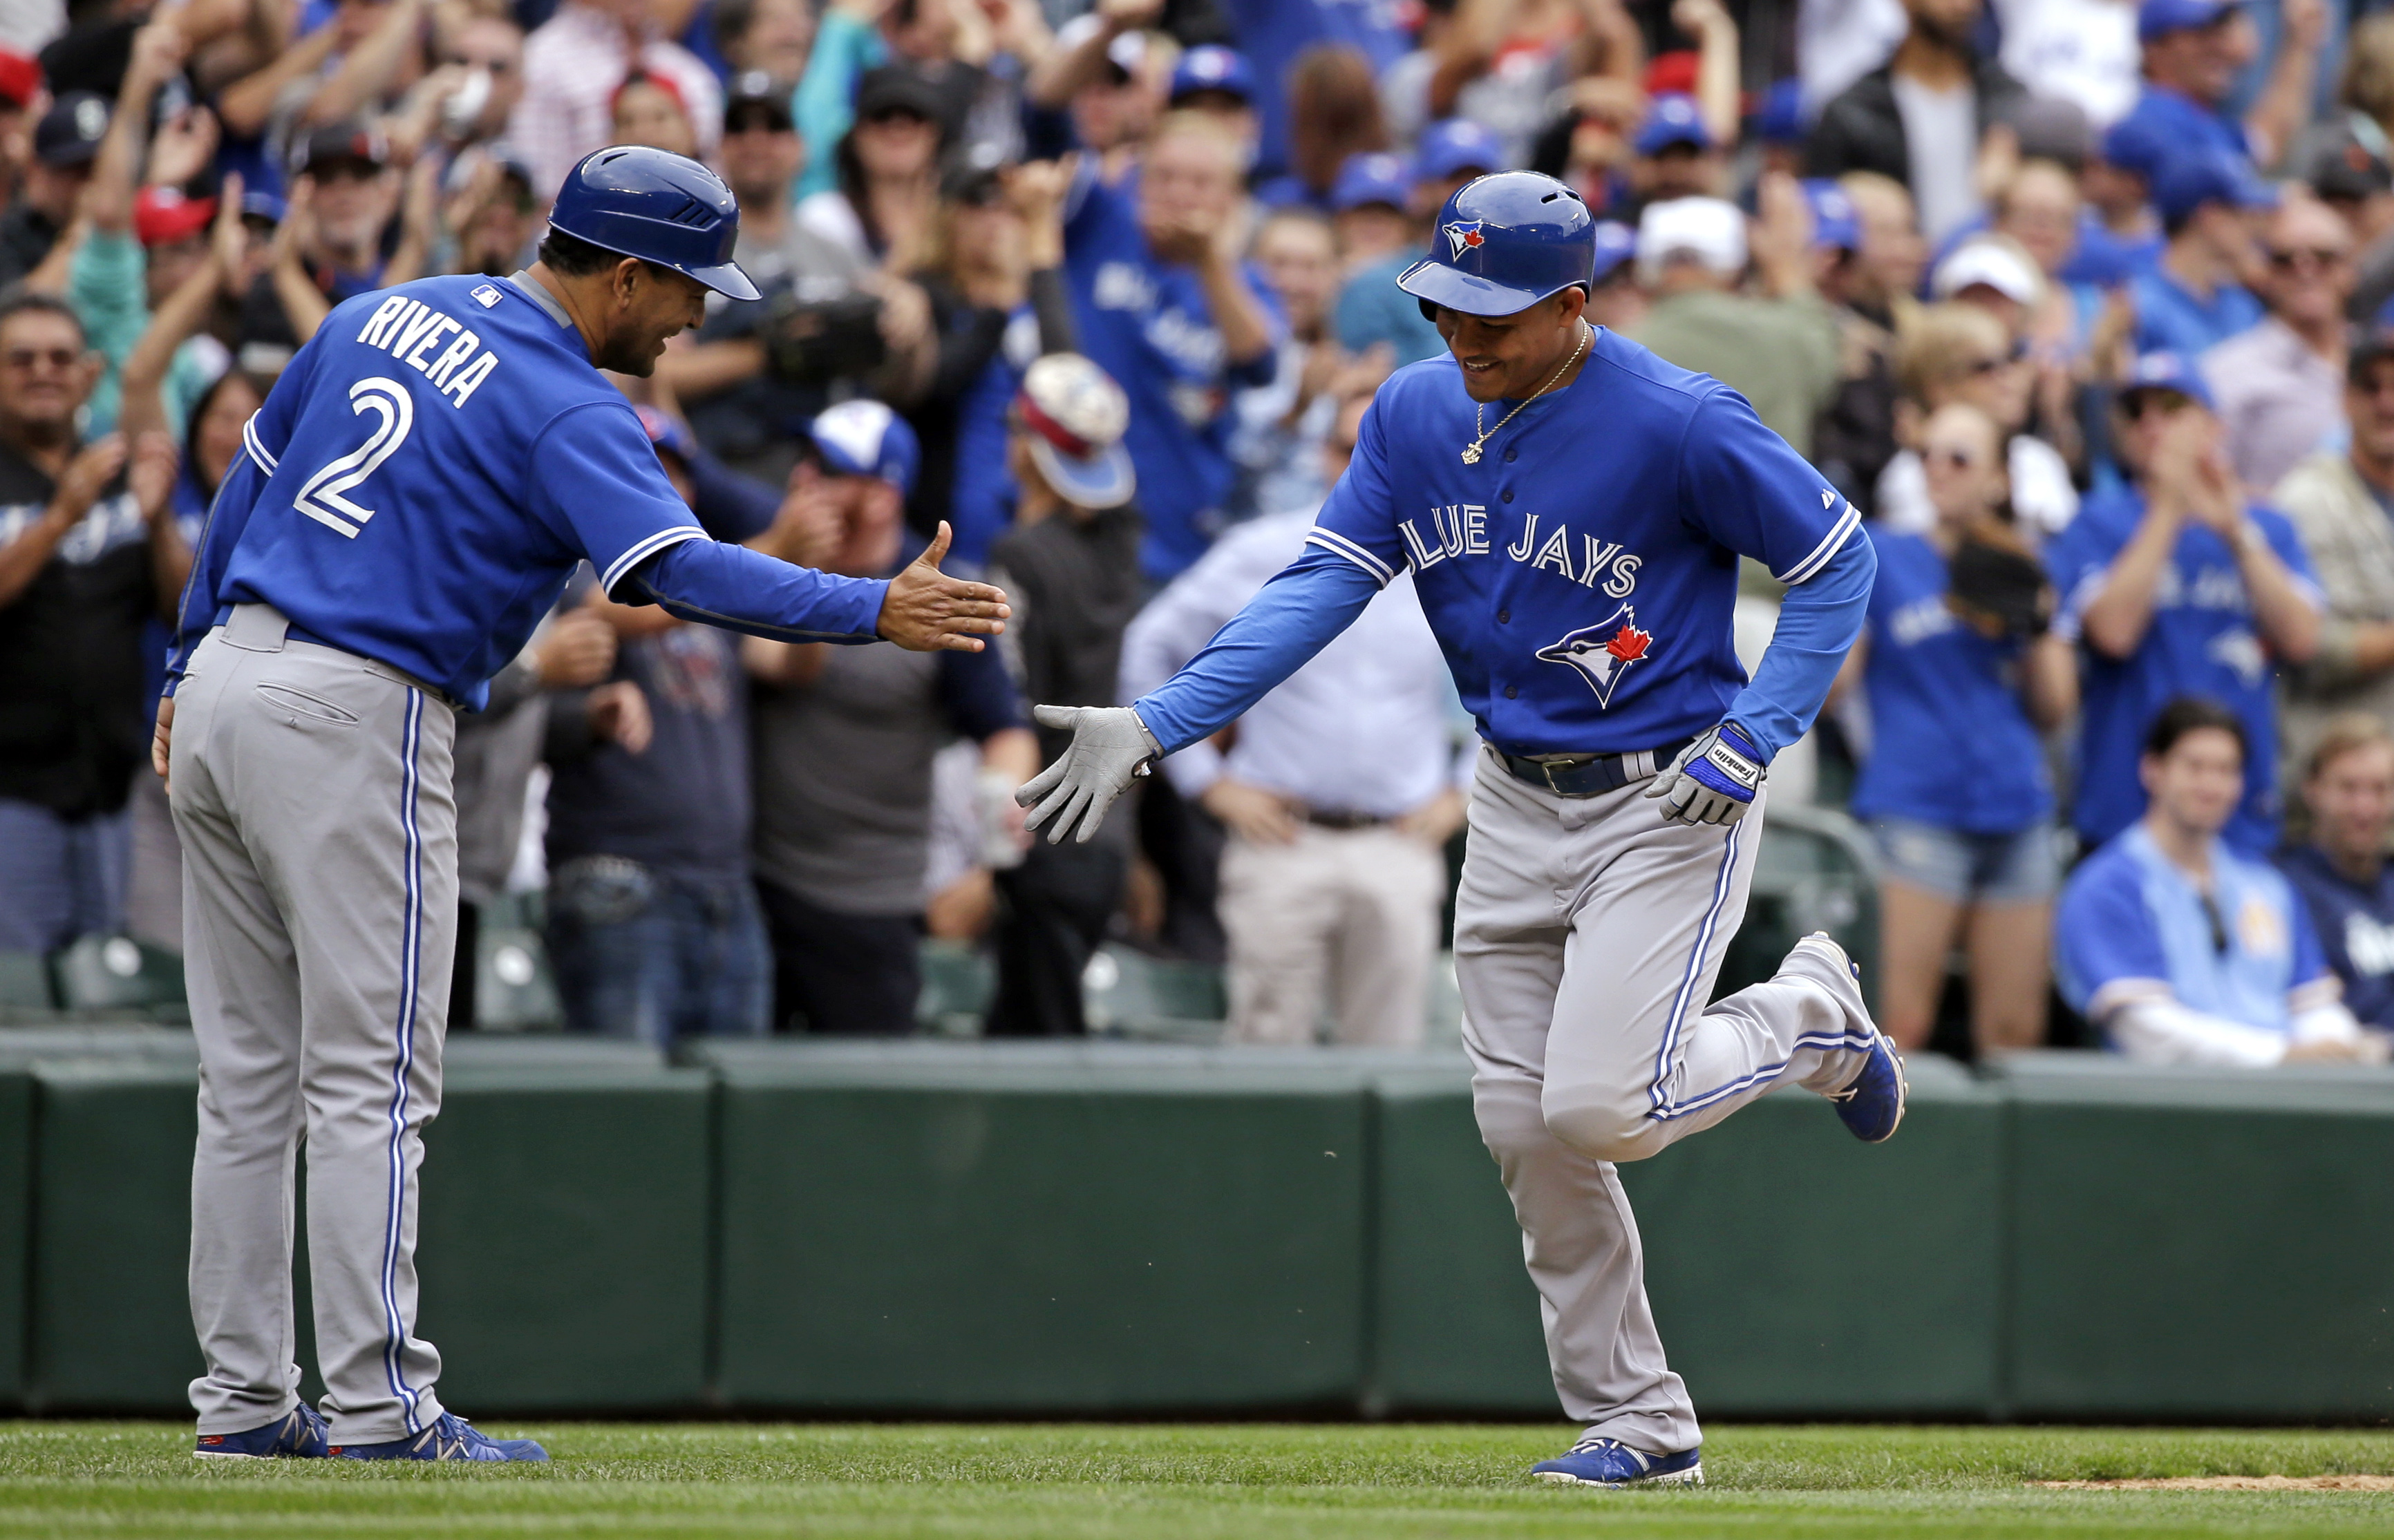 Toronto Blue Jays' Ezequiel Carrera, right, is congratulated by third base coach Luis Rivera on Carrera's two-run home run against the Seattle Mariners in the eighth inning of a baseball game Saturday, July 25, 2015, in Seattle. (AP Photo/Elaine Thompson)